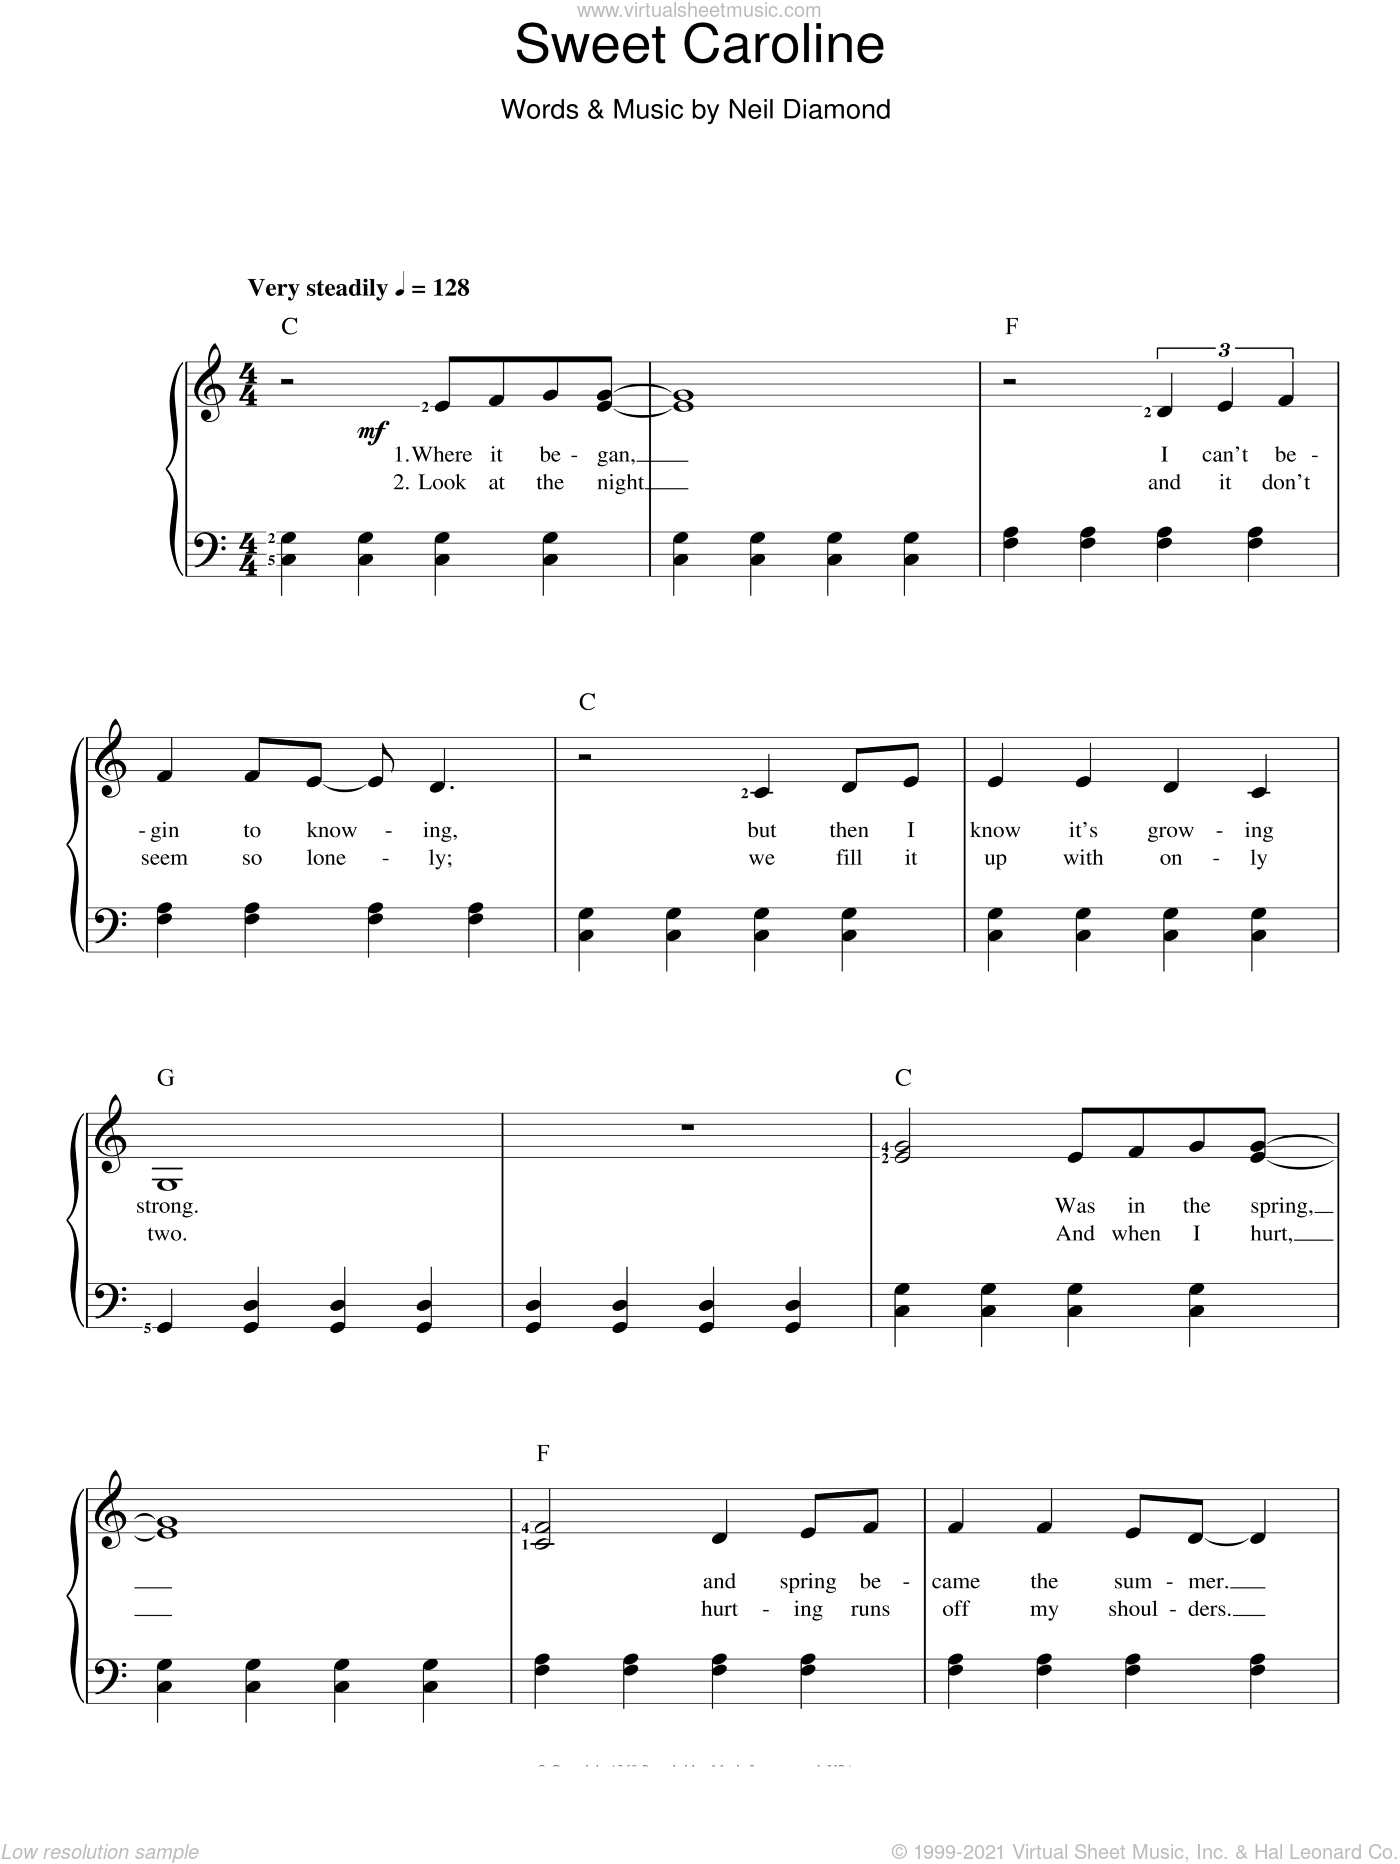 Sweet Caroline sheet music for voice and piano by Neil Diamond, intermediate skill level